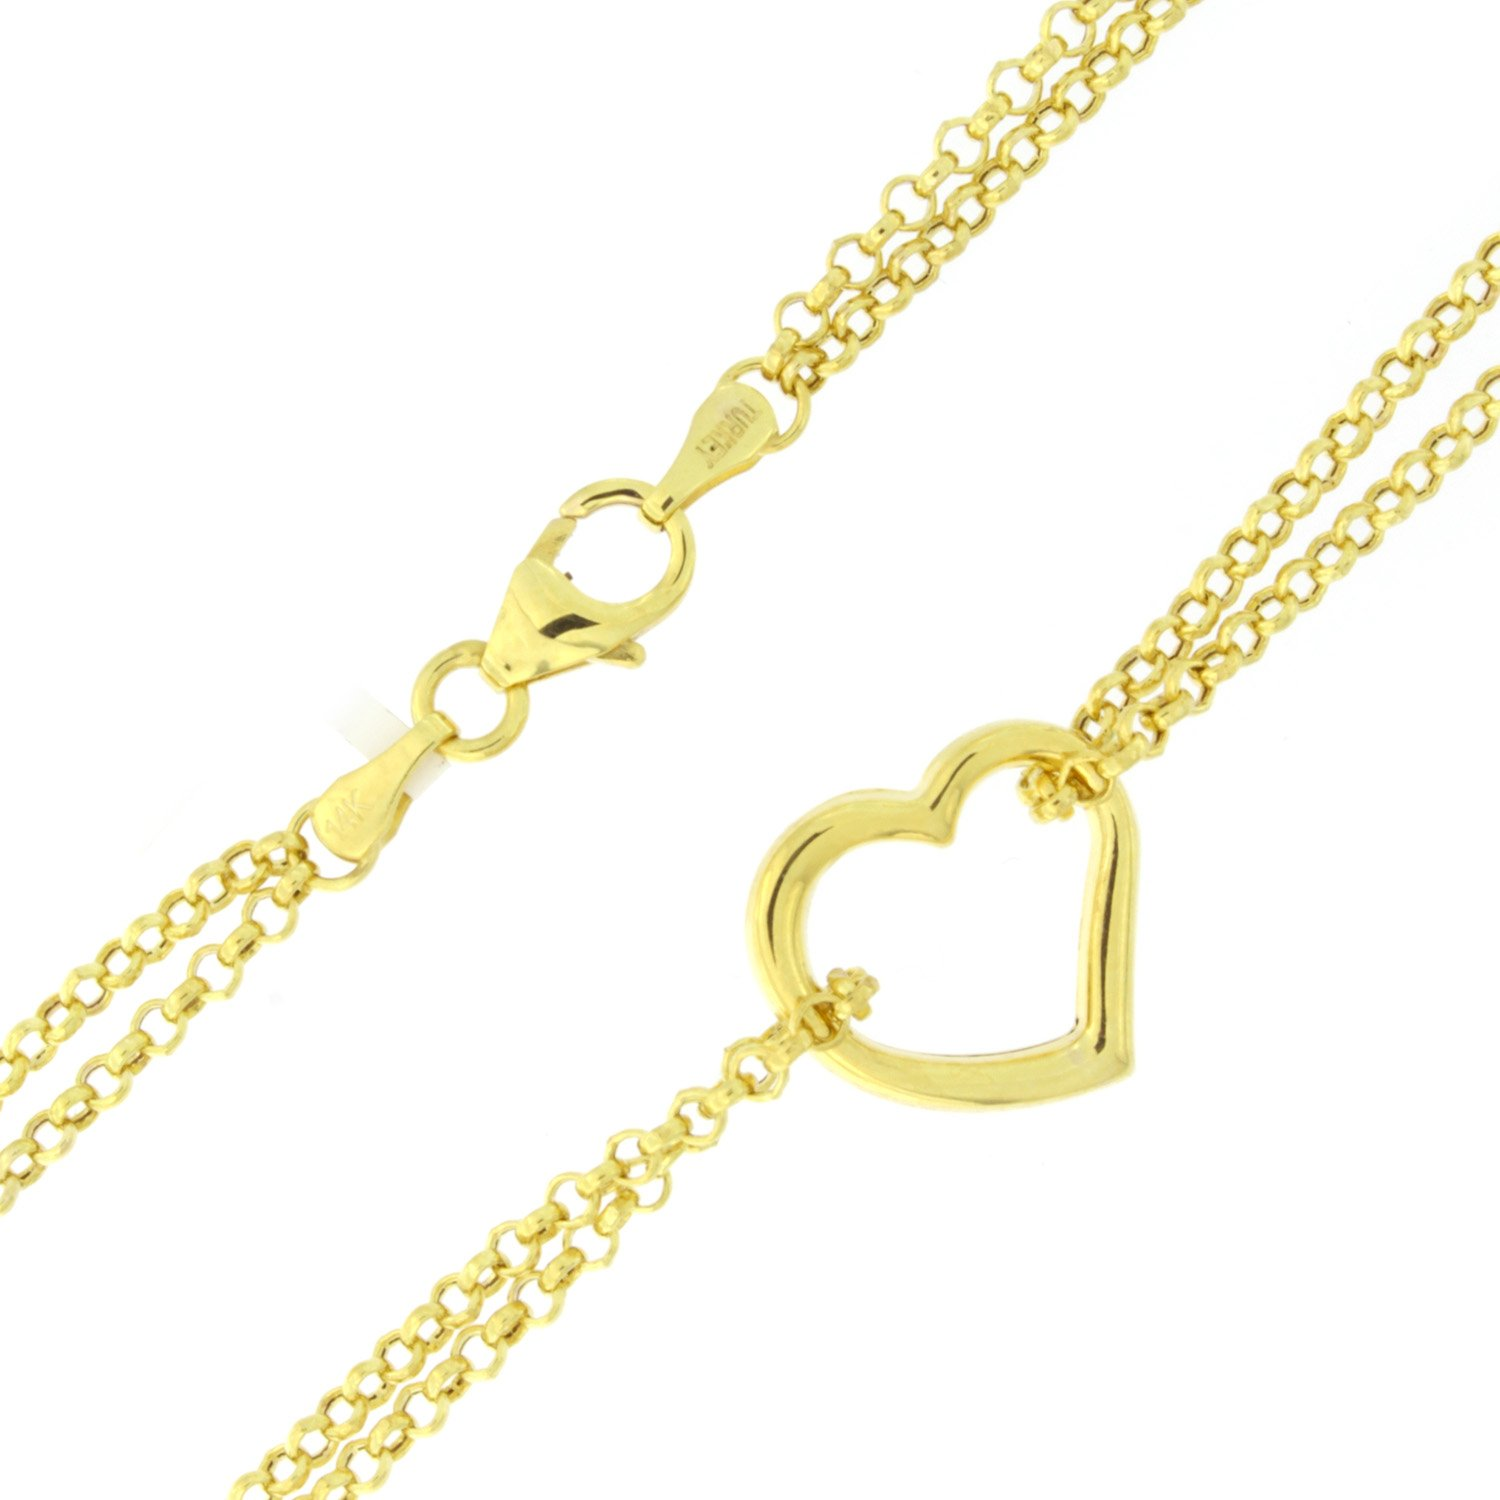 10k Yellow Gold Double Chain Heart Anklet - 10''